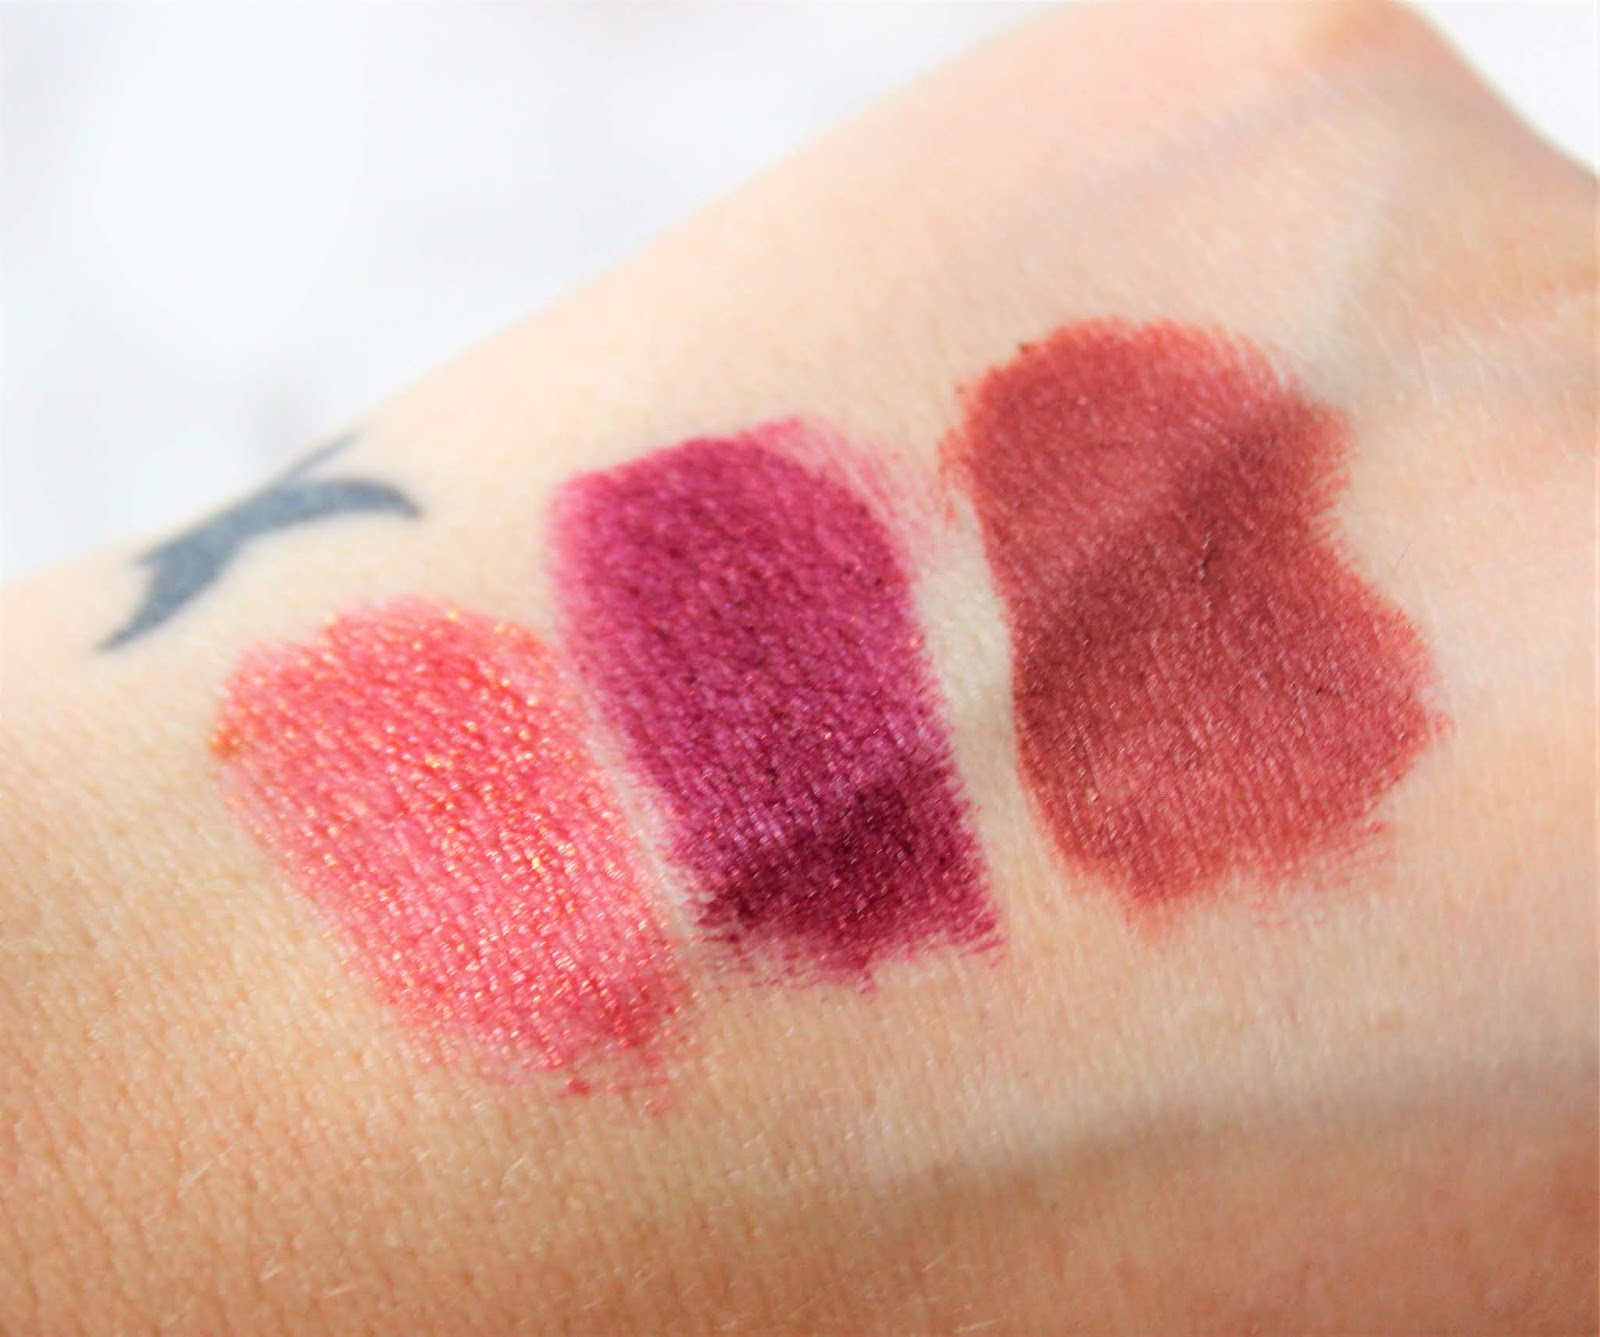 Born To Run Lipstick Swatches